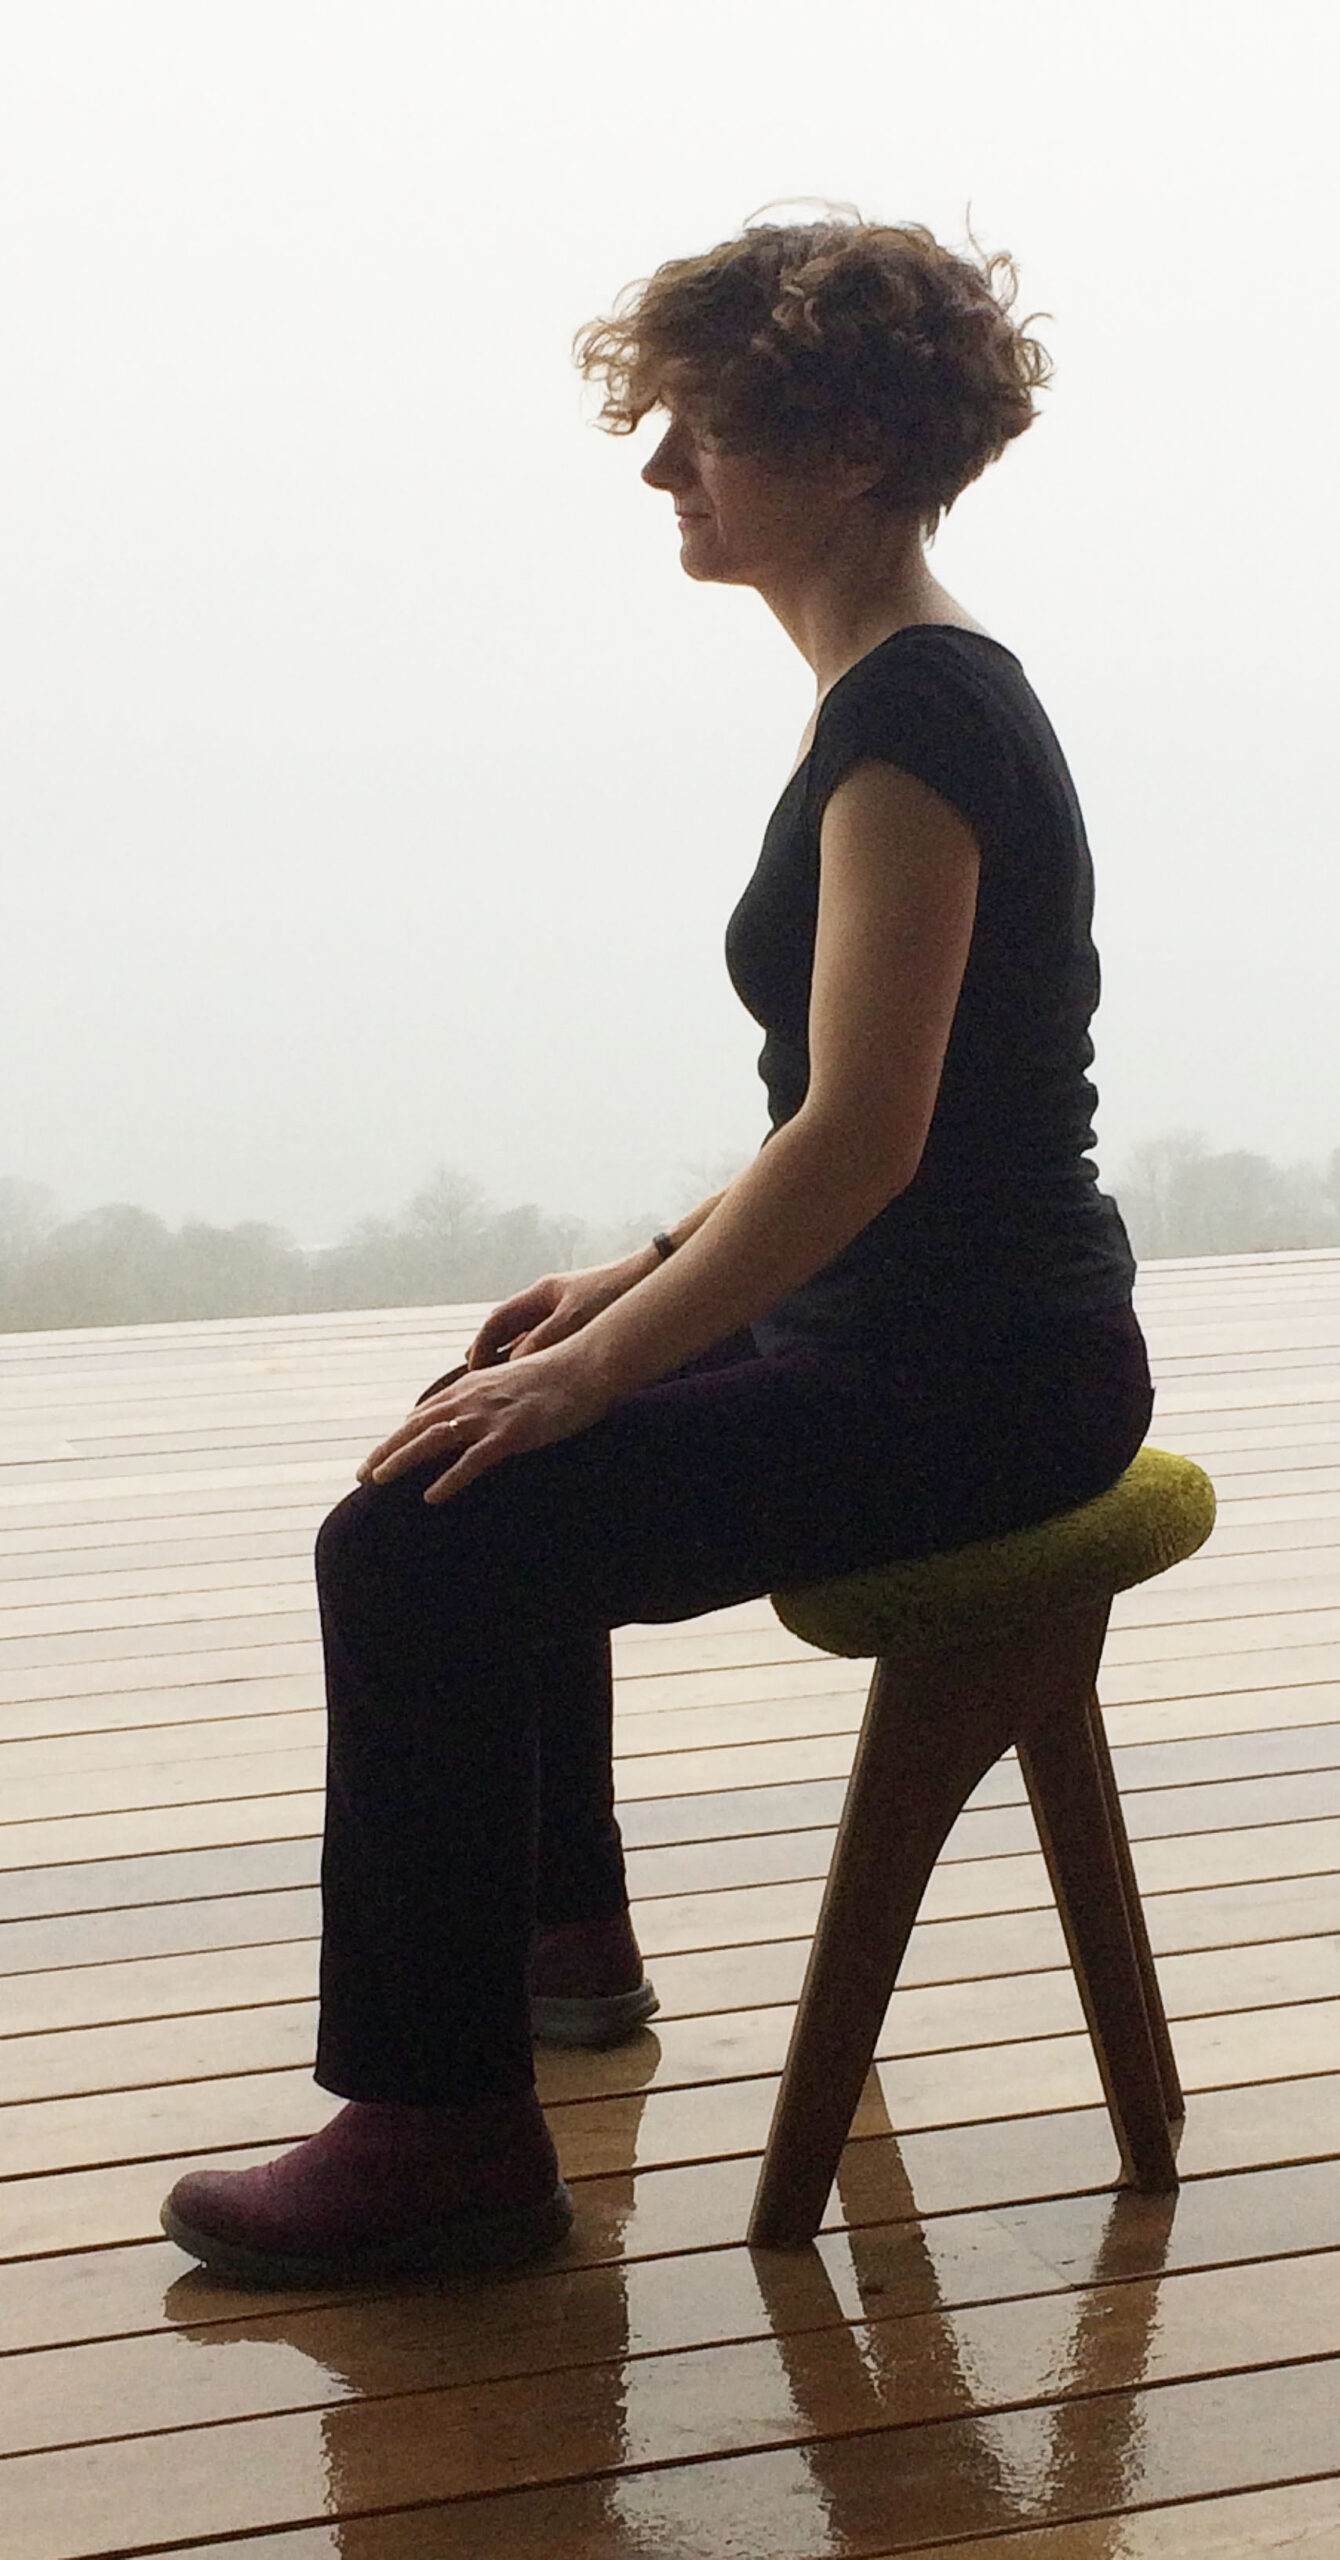 Sitting with a natural posture